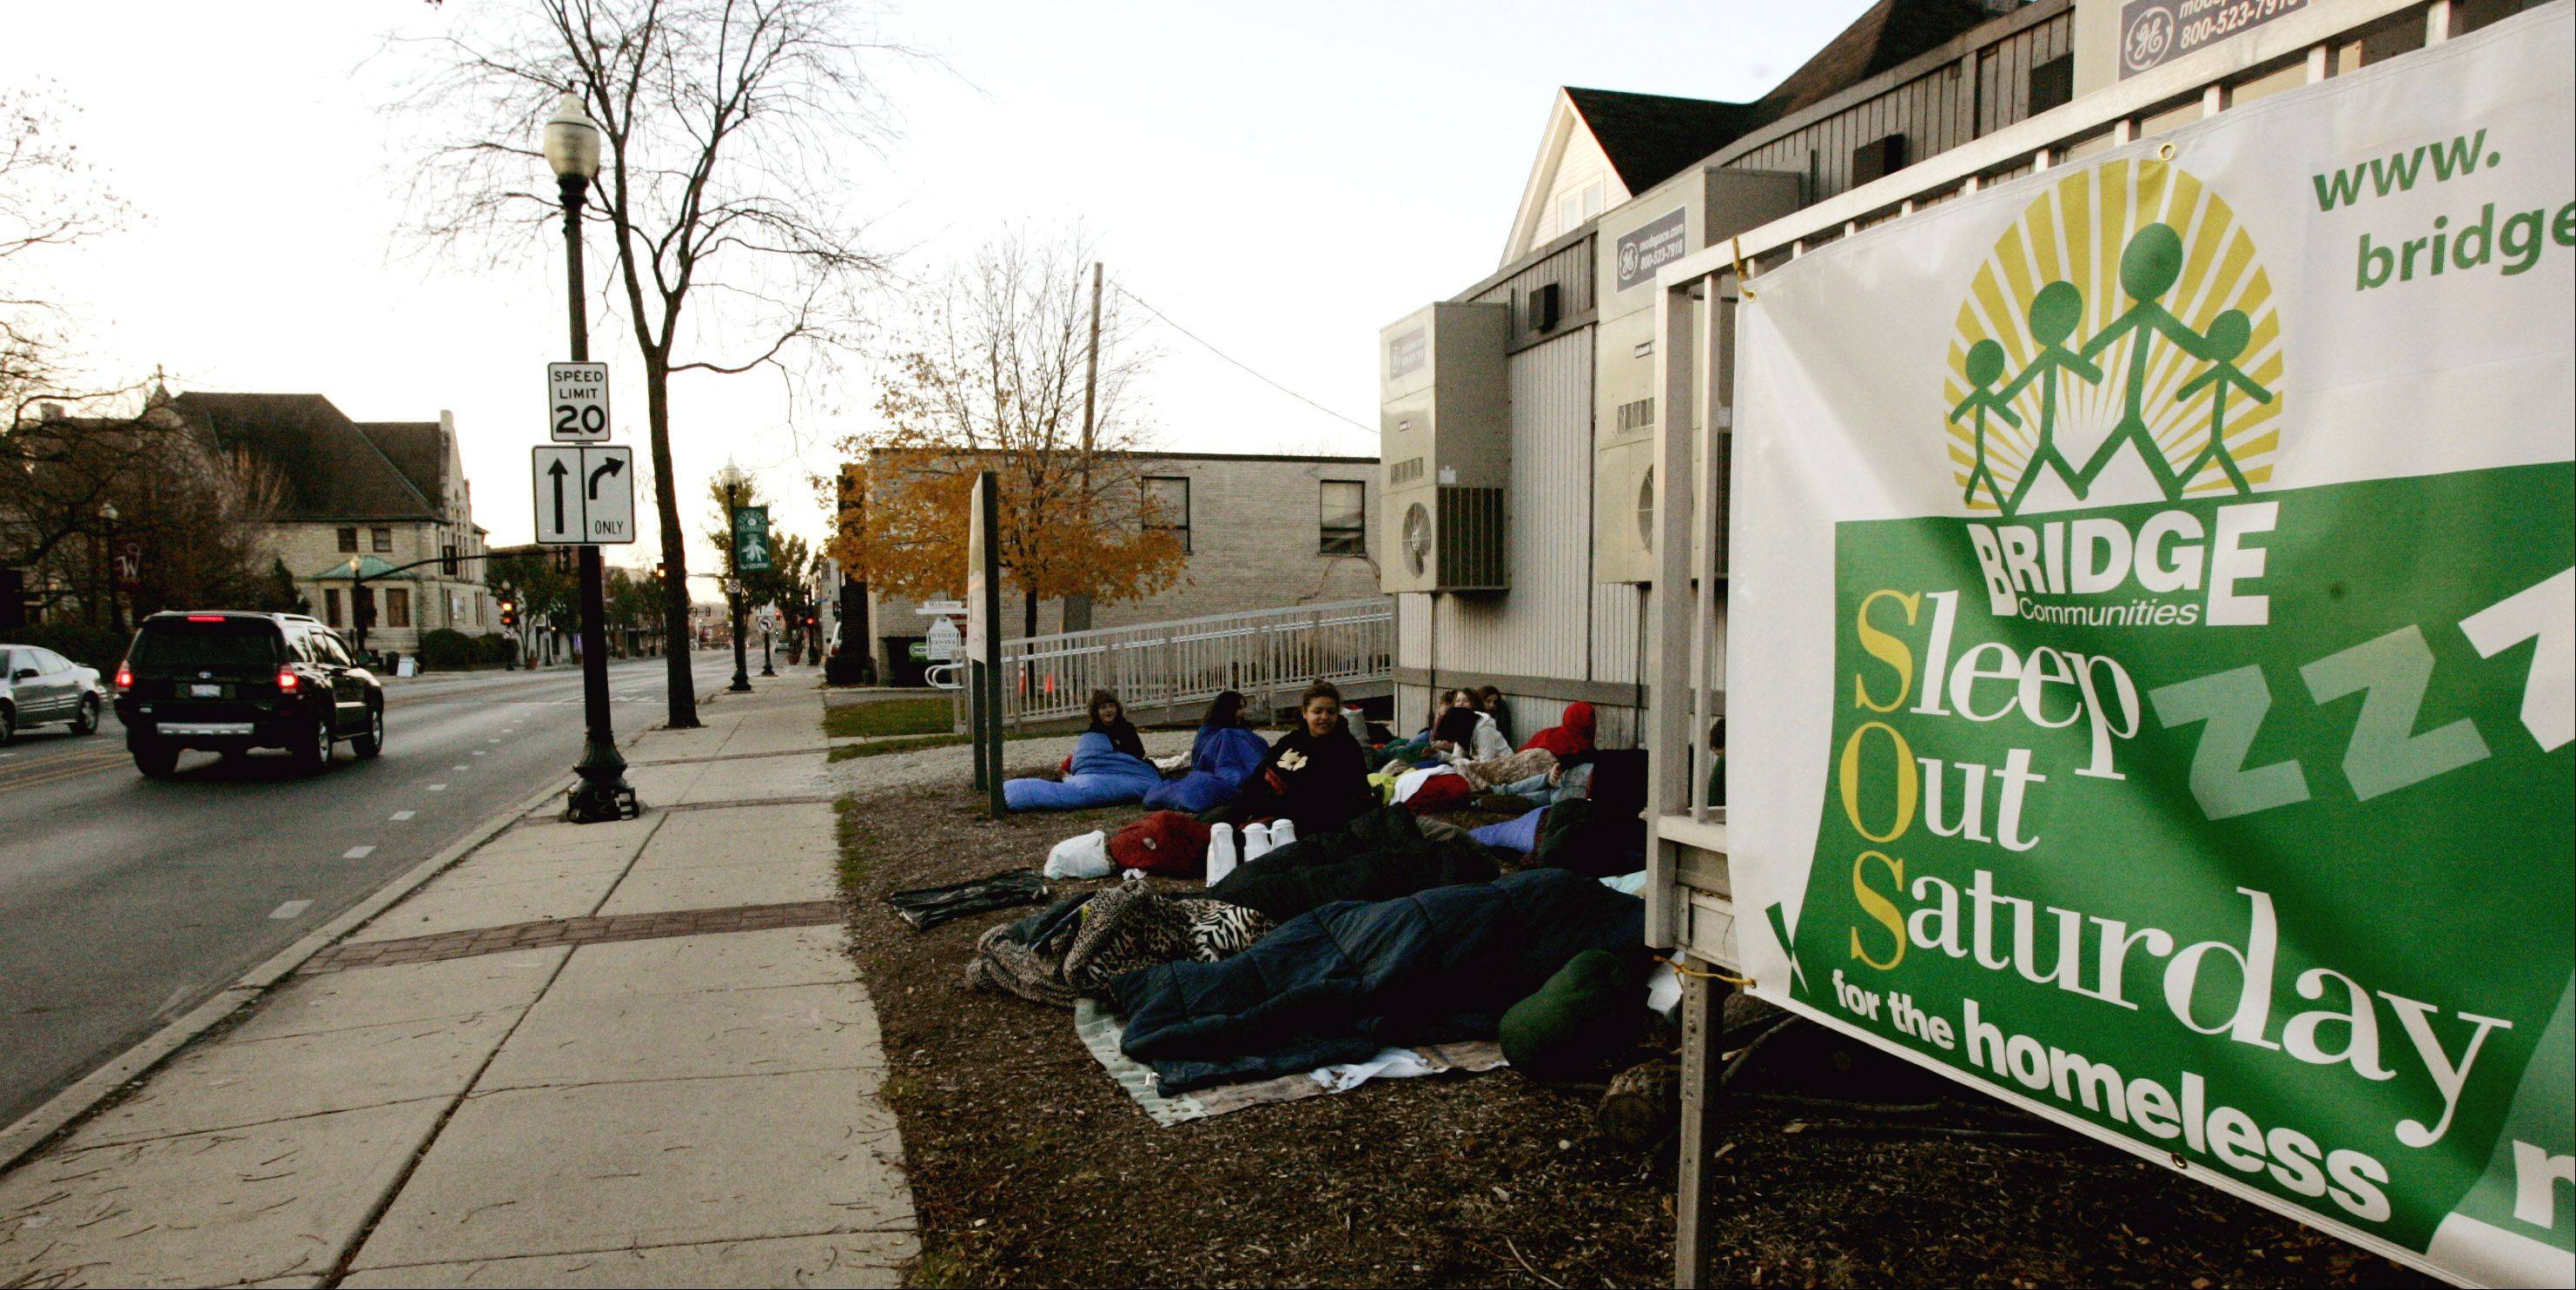 More than 2,000 people across DuPage County are expected to sleep outside in tents, boxes and cars Saturday to raise awareness about homelessness.